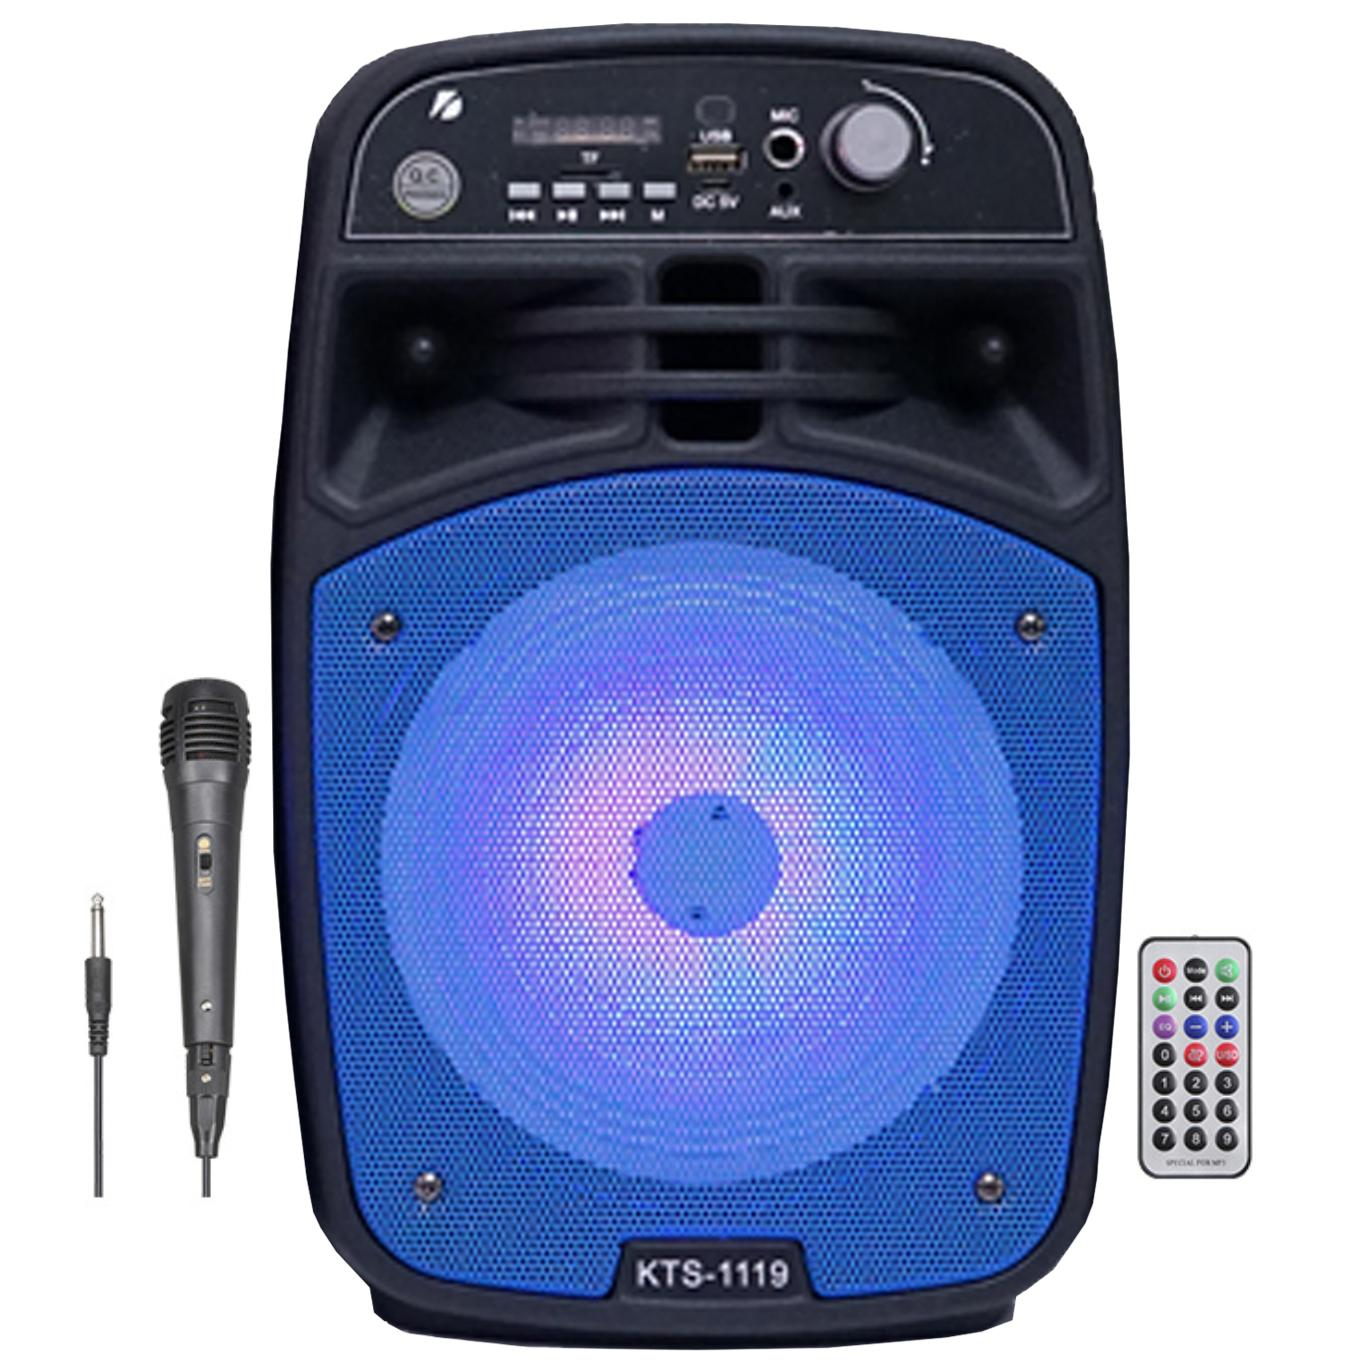 SPEAKER BLUETOOTH KTS-1119 FOR MP3 & MOBILE & FM & SD CARD USB & AUX & MIC & REMOTE ,Speakers